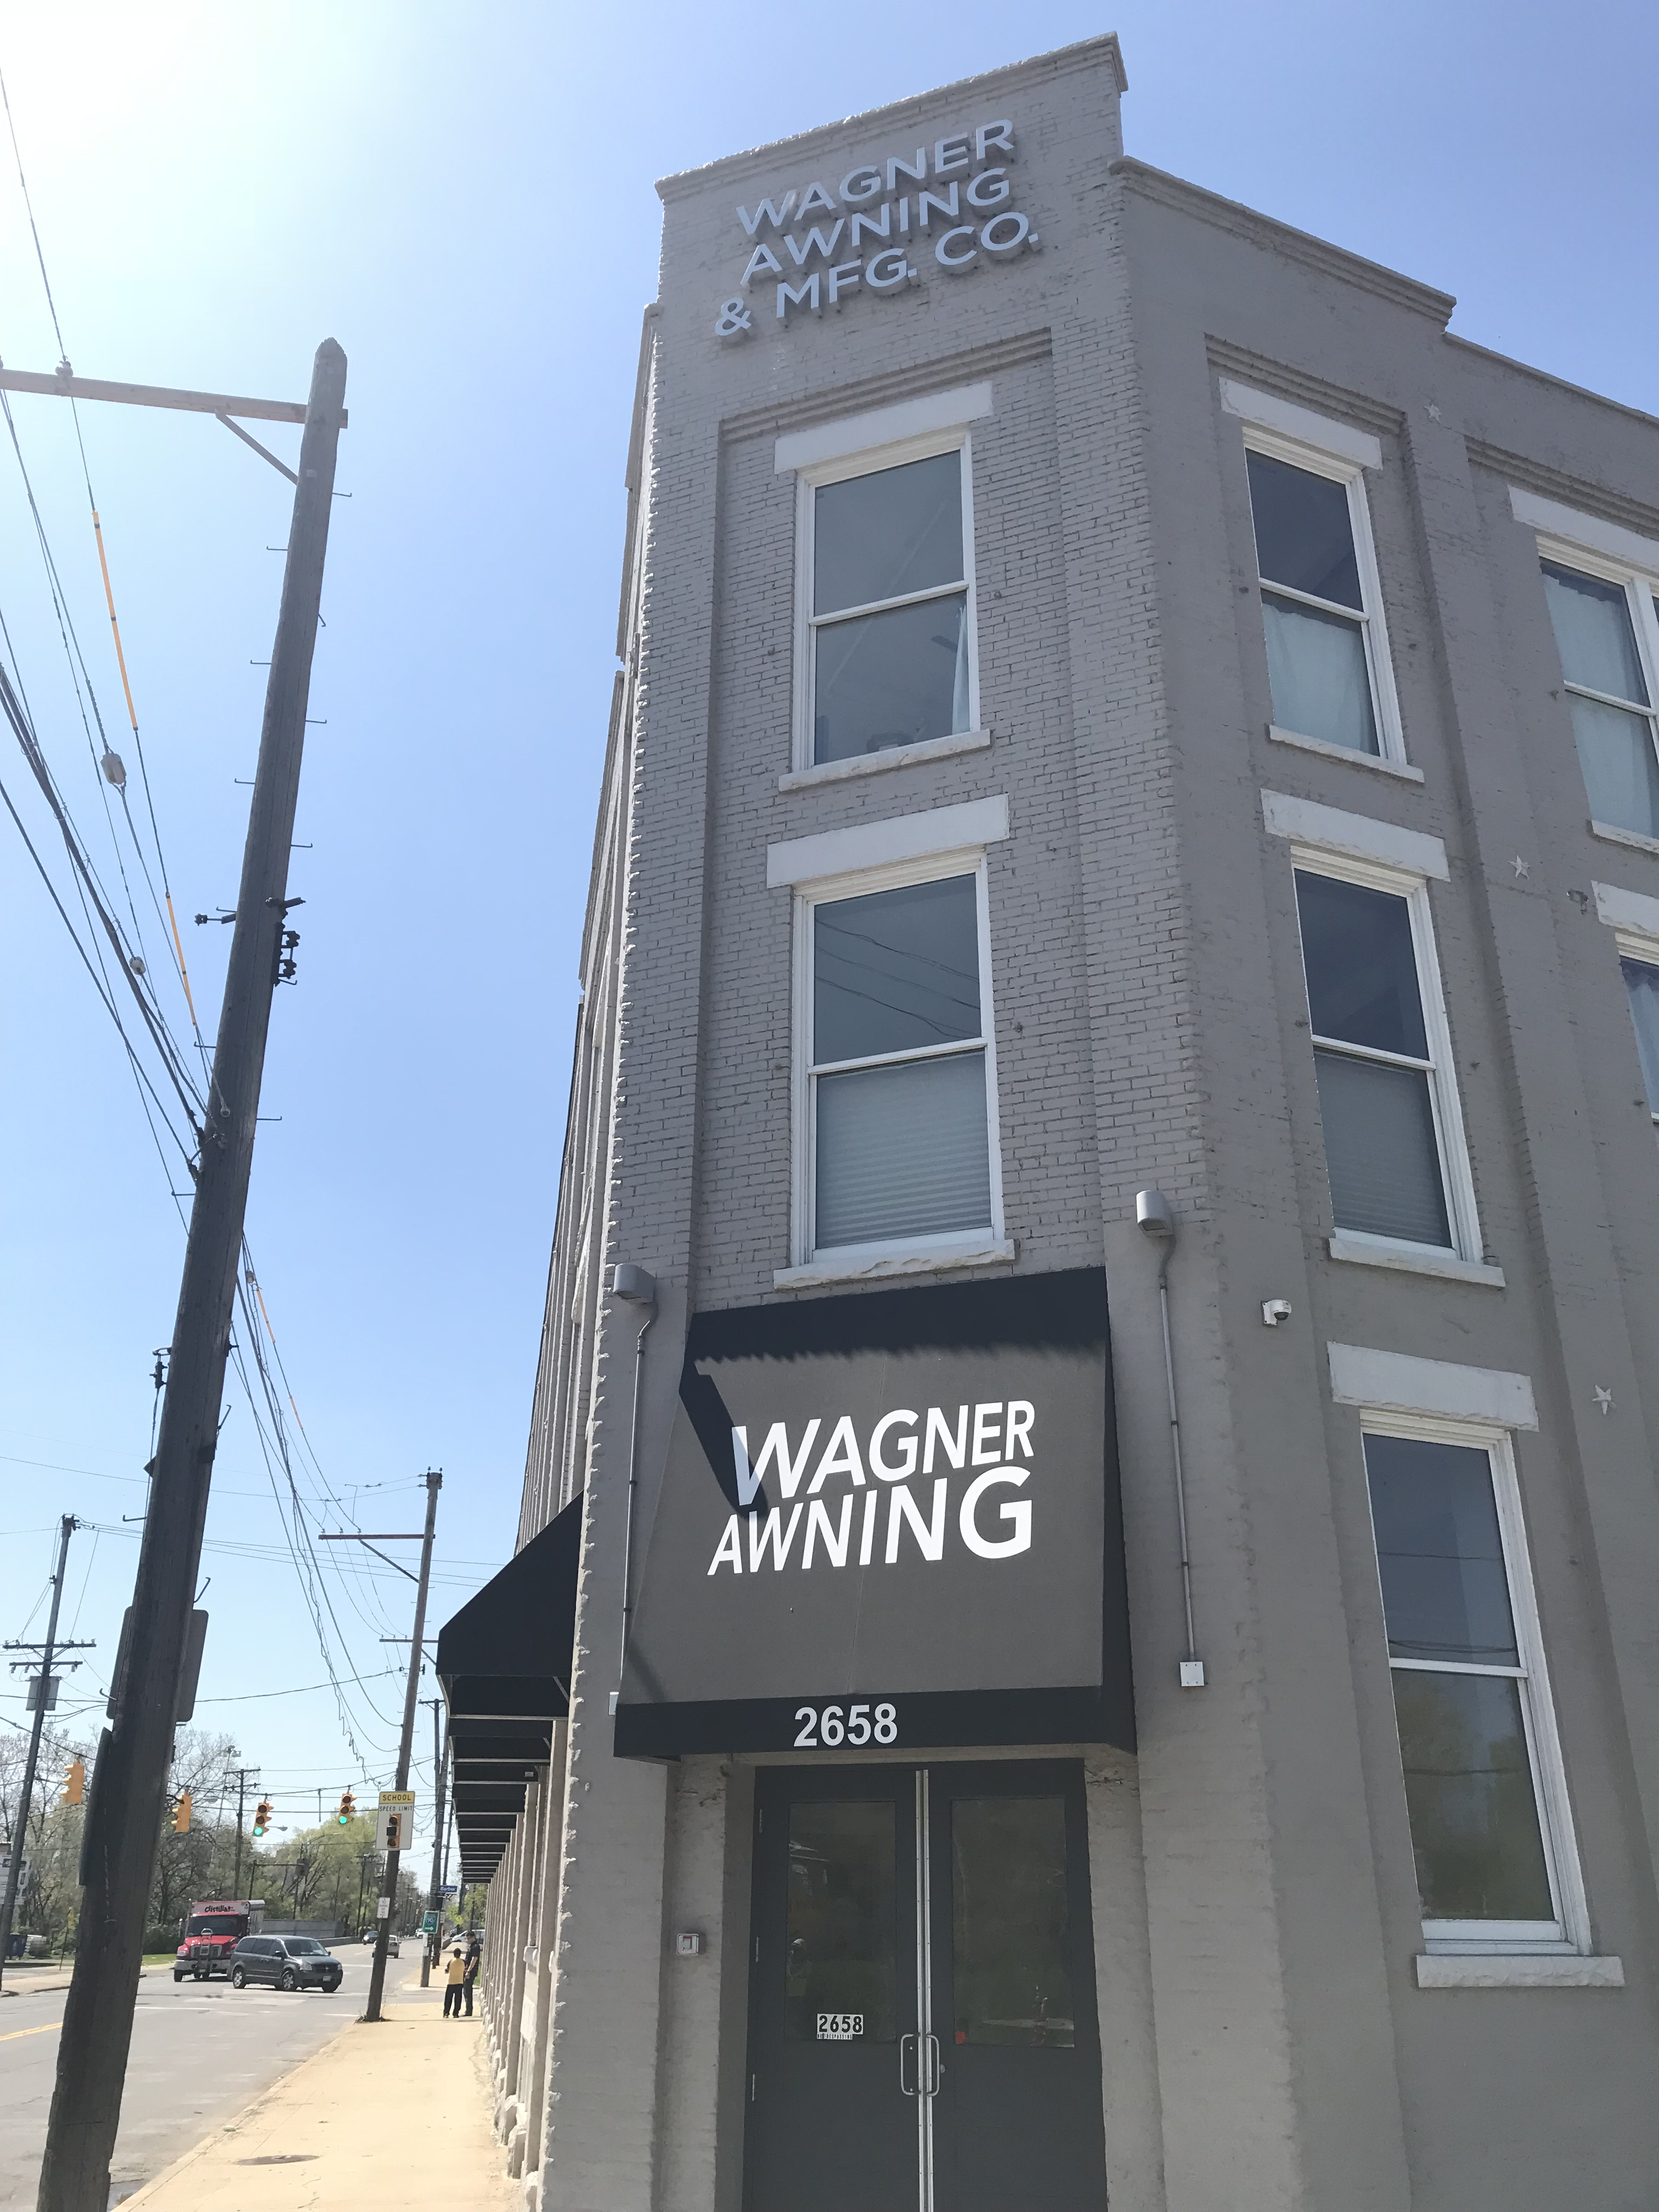 Gray brick building on street corner and entrance with awning that says Wagner Awning